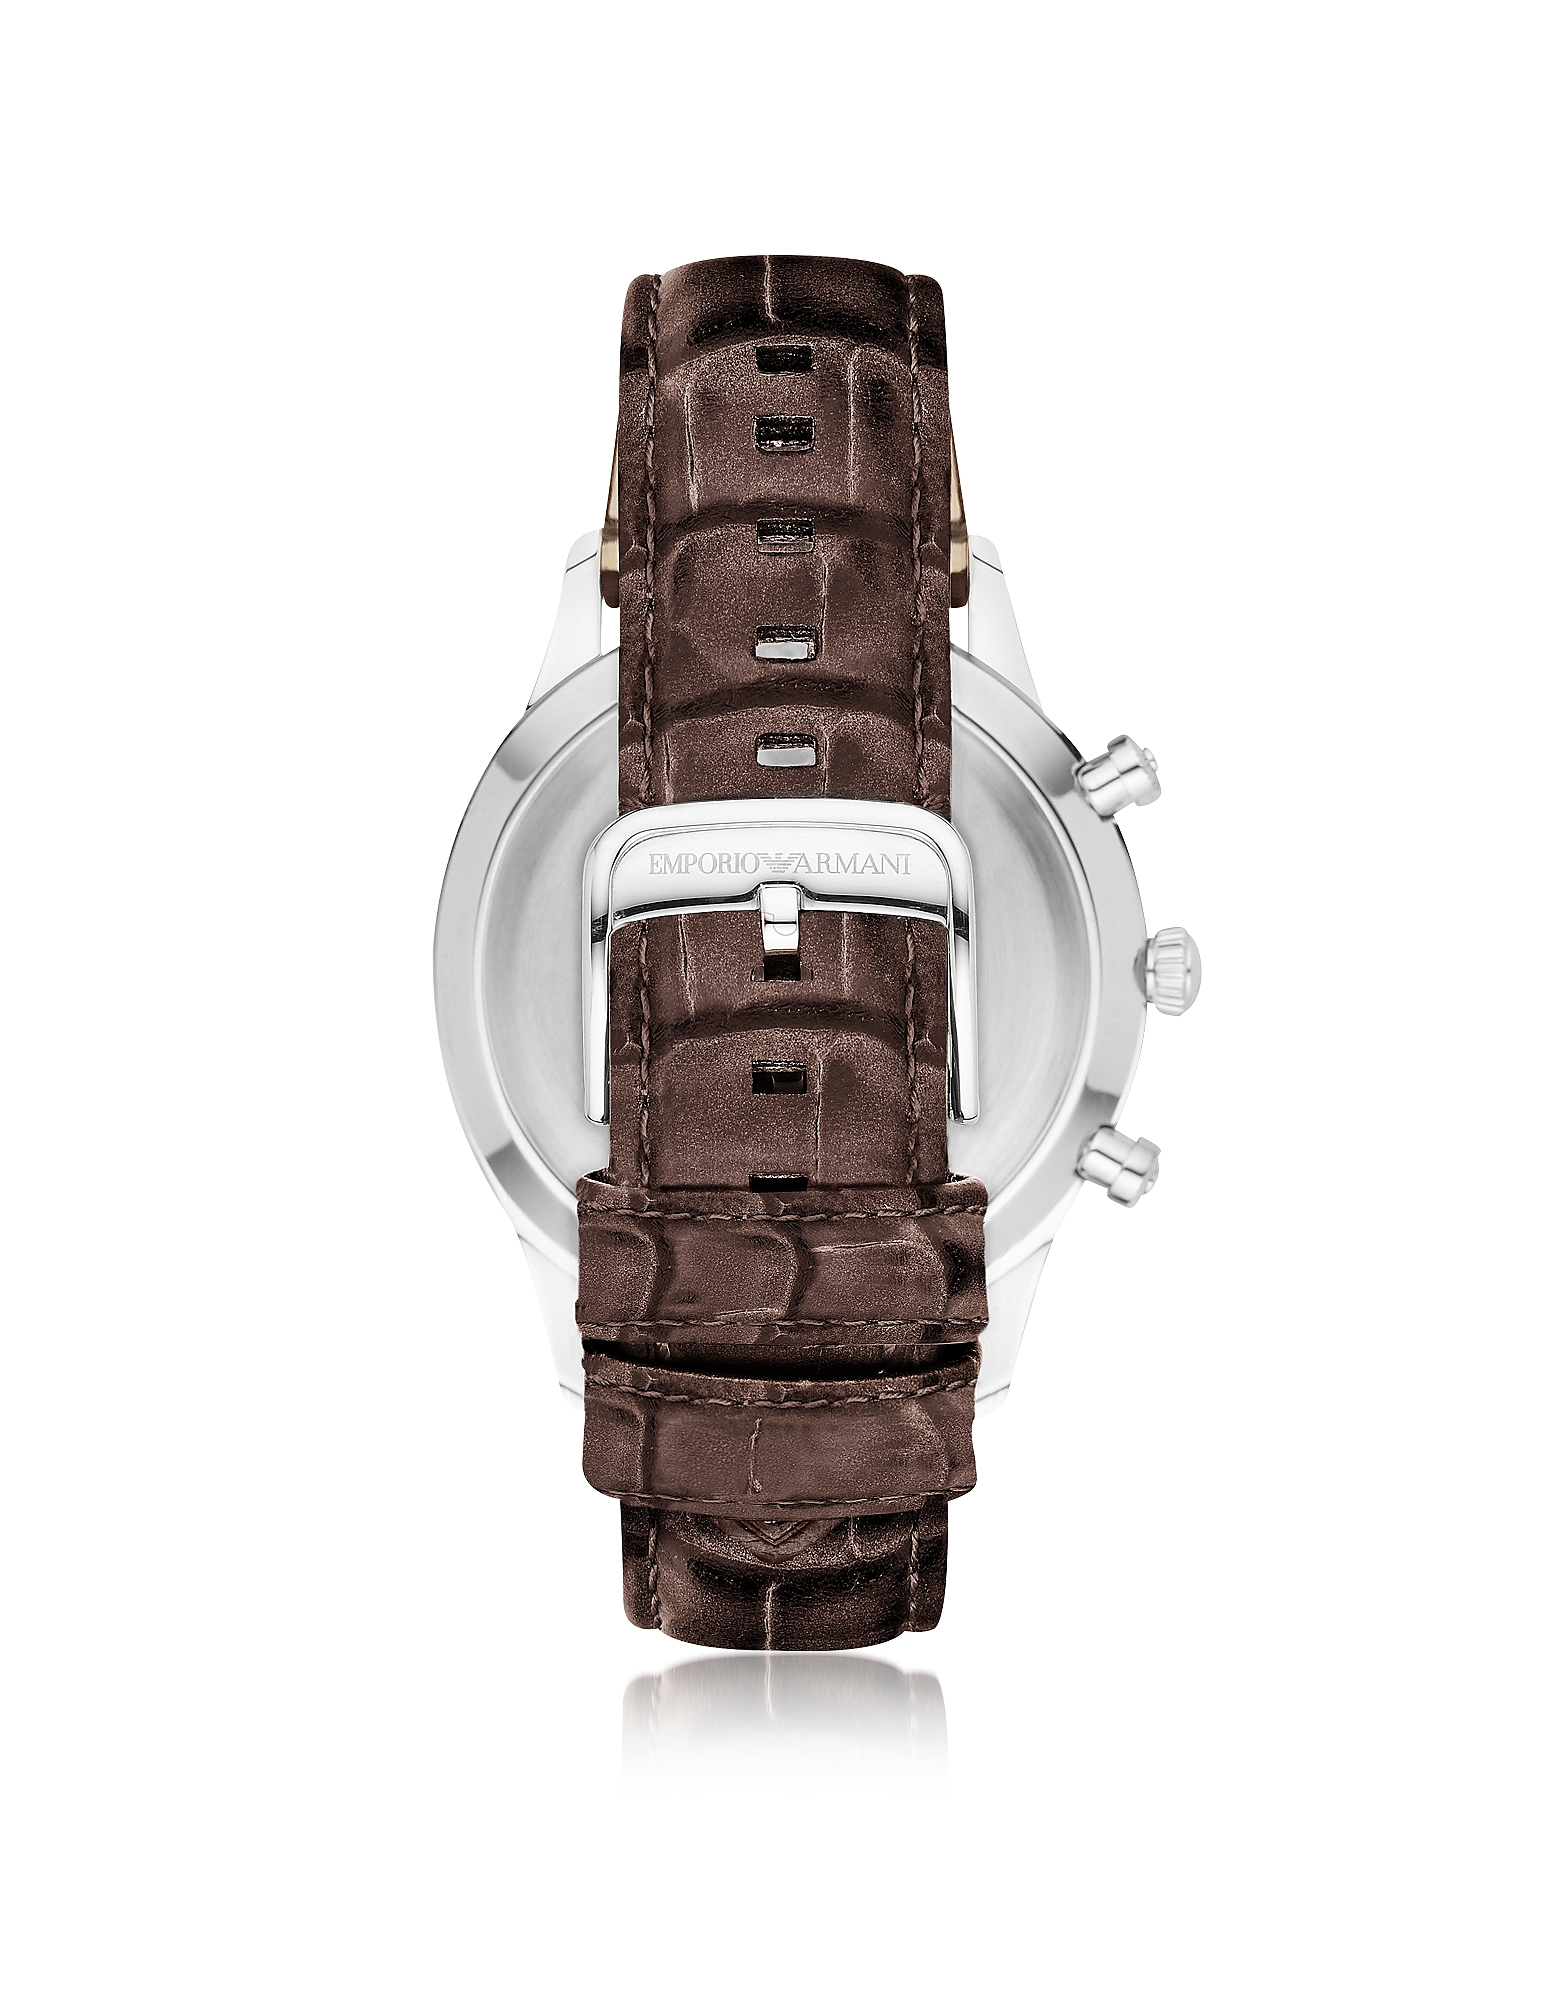 Stainless Steel Round Case Men's Watch w/Croco Embossed Leather Strap от Forzieri.com INT